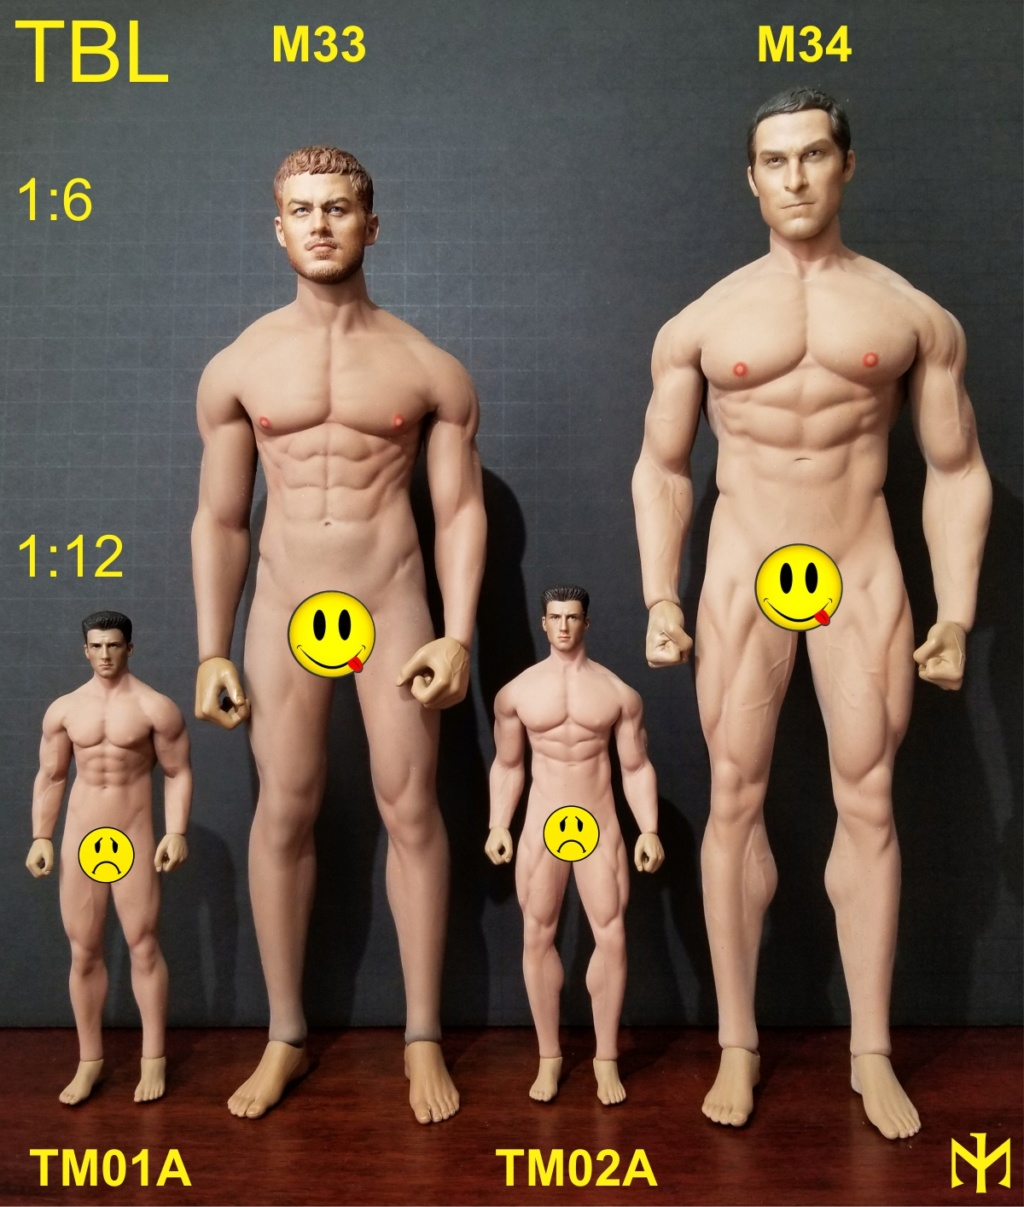 body - TBLeague (Phicen) seamless body scale comparison (updated with Part III) Tblmbs10